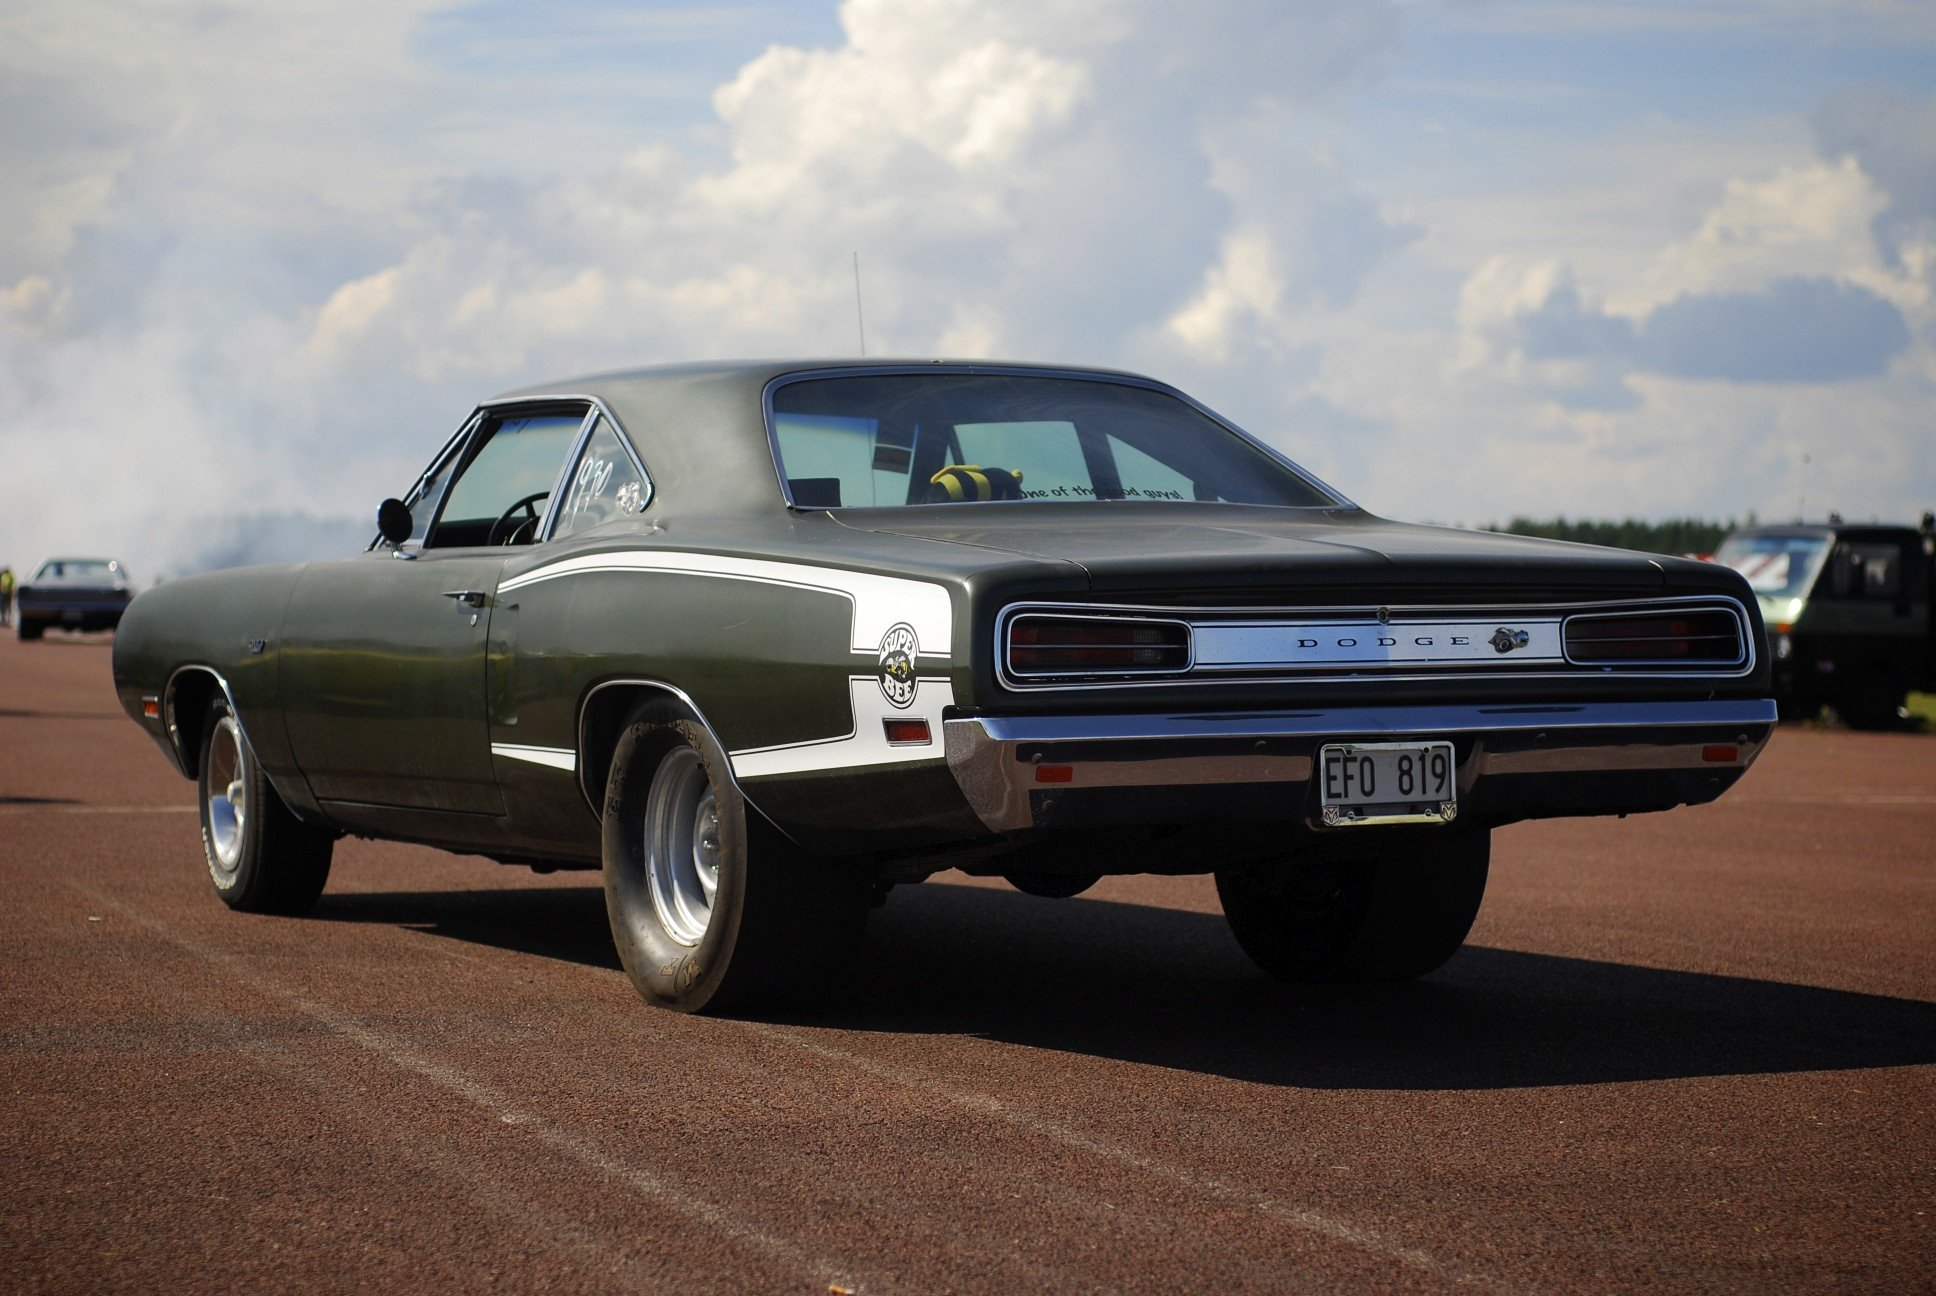 1969 1970 dodge Coronet Super Bee Six Pack 440 muscle cars ...